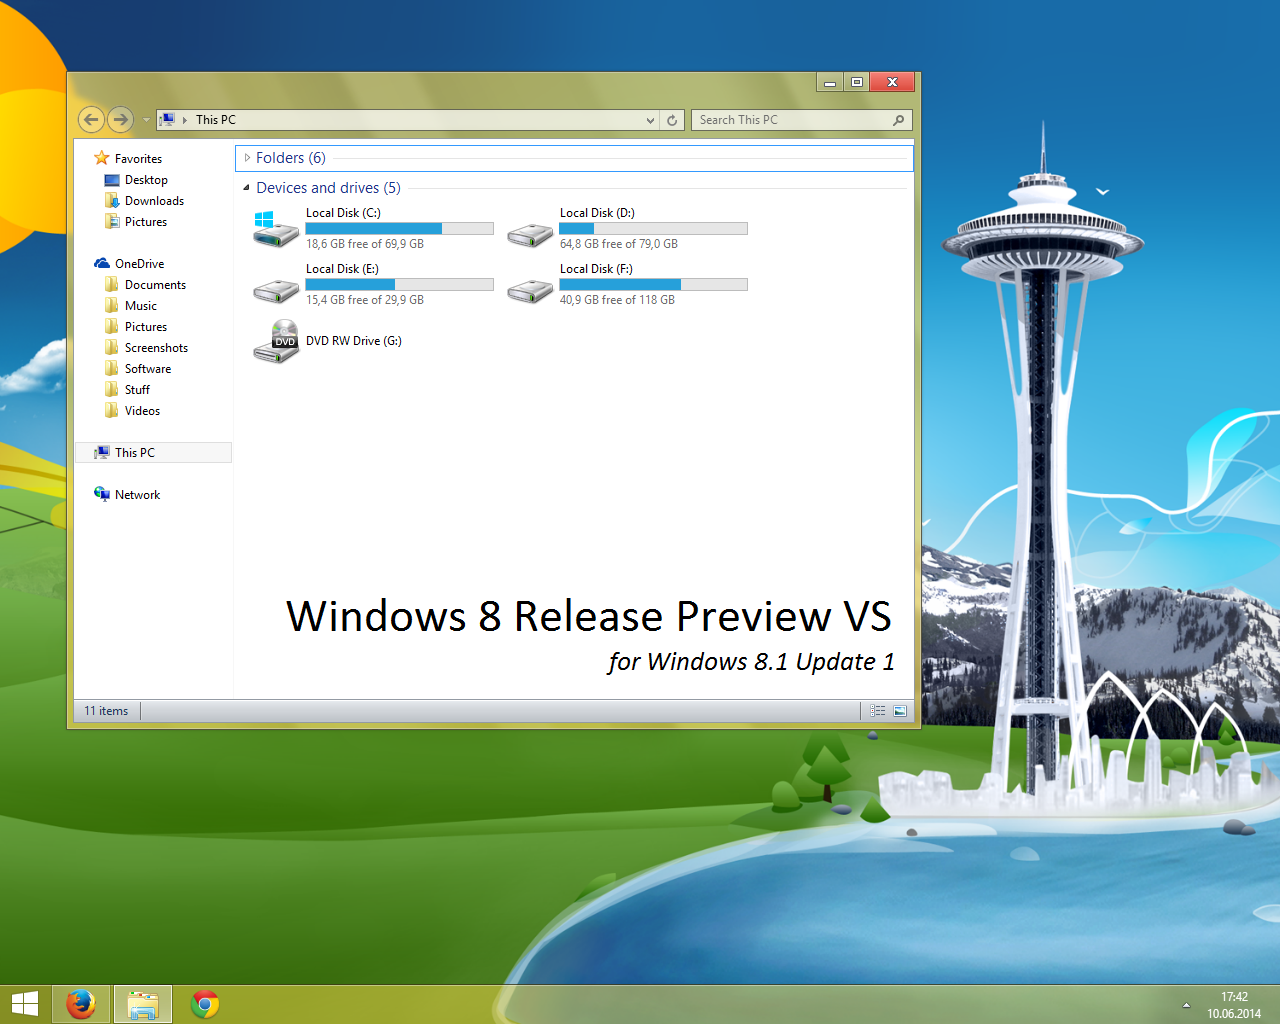 Windows 8 Release Preview VS for Windows 811 by Misaki2009 on 1280x1024